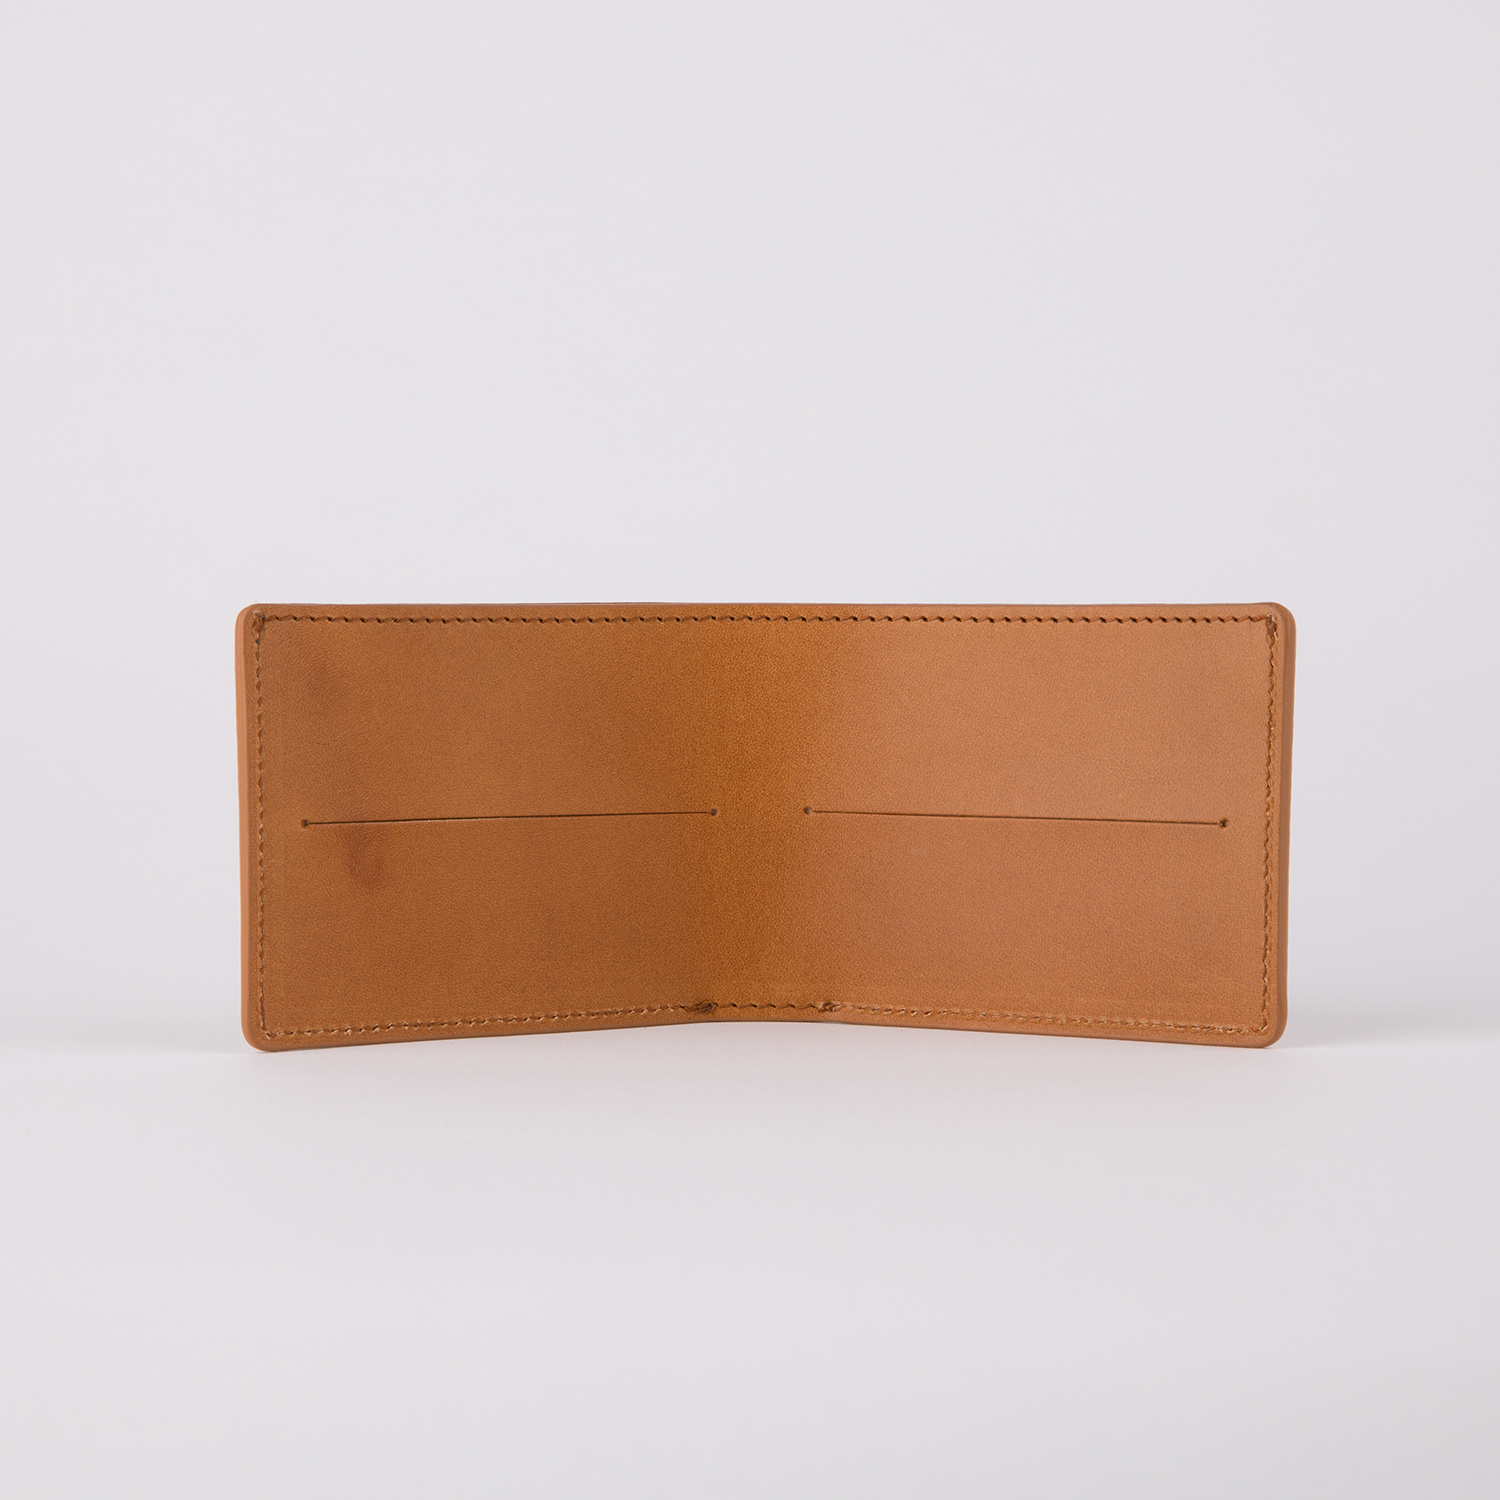 [오디너티]ESPRESSO BROWN (Buttero, Italy vegetable leather)